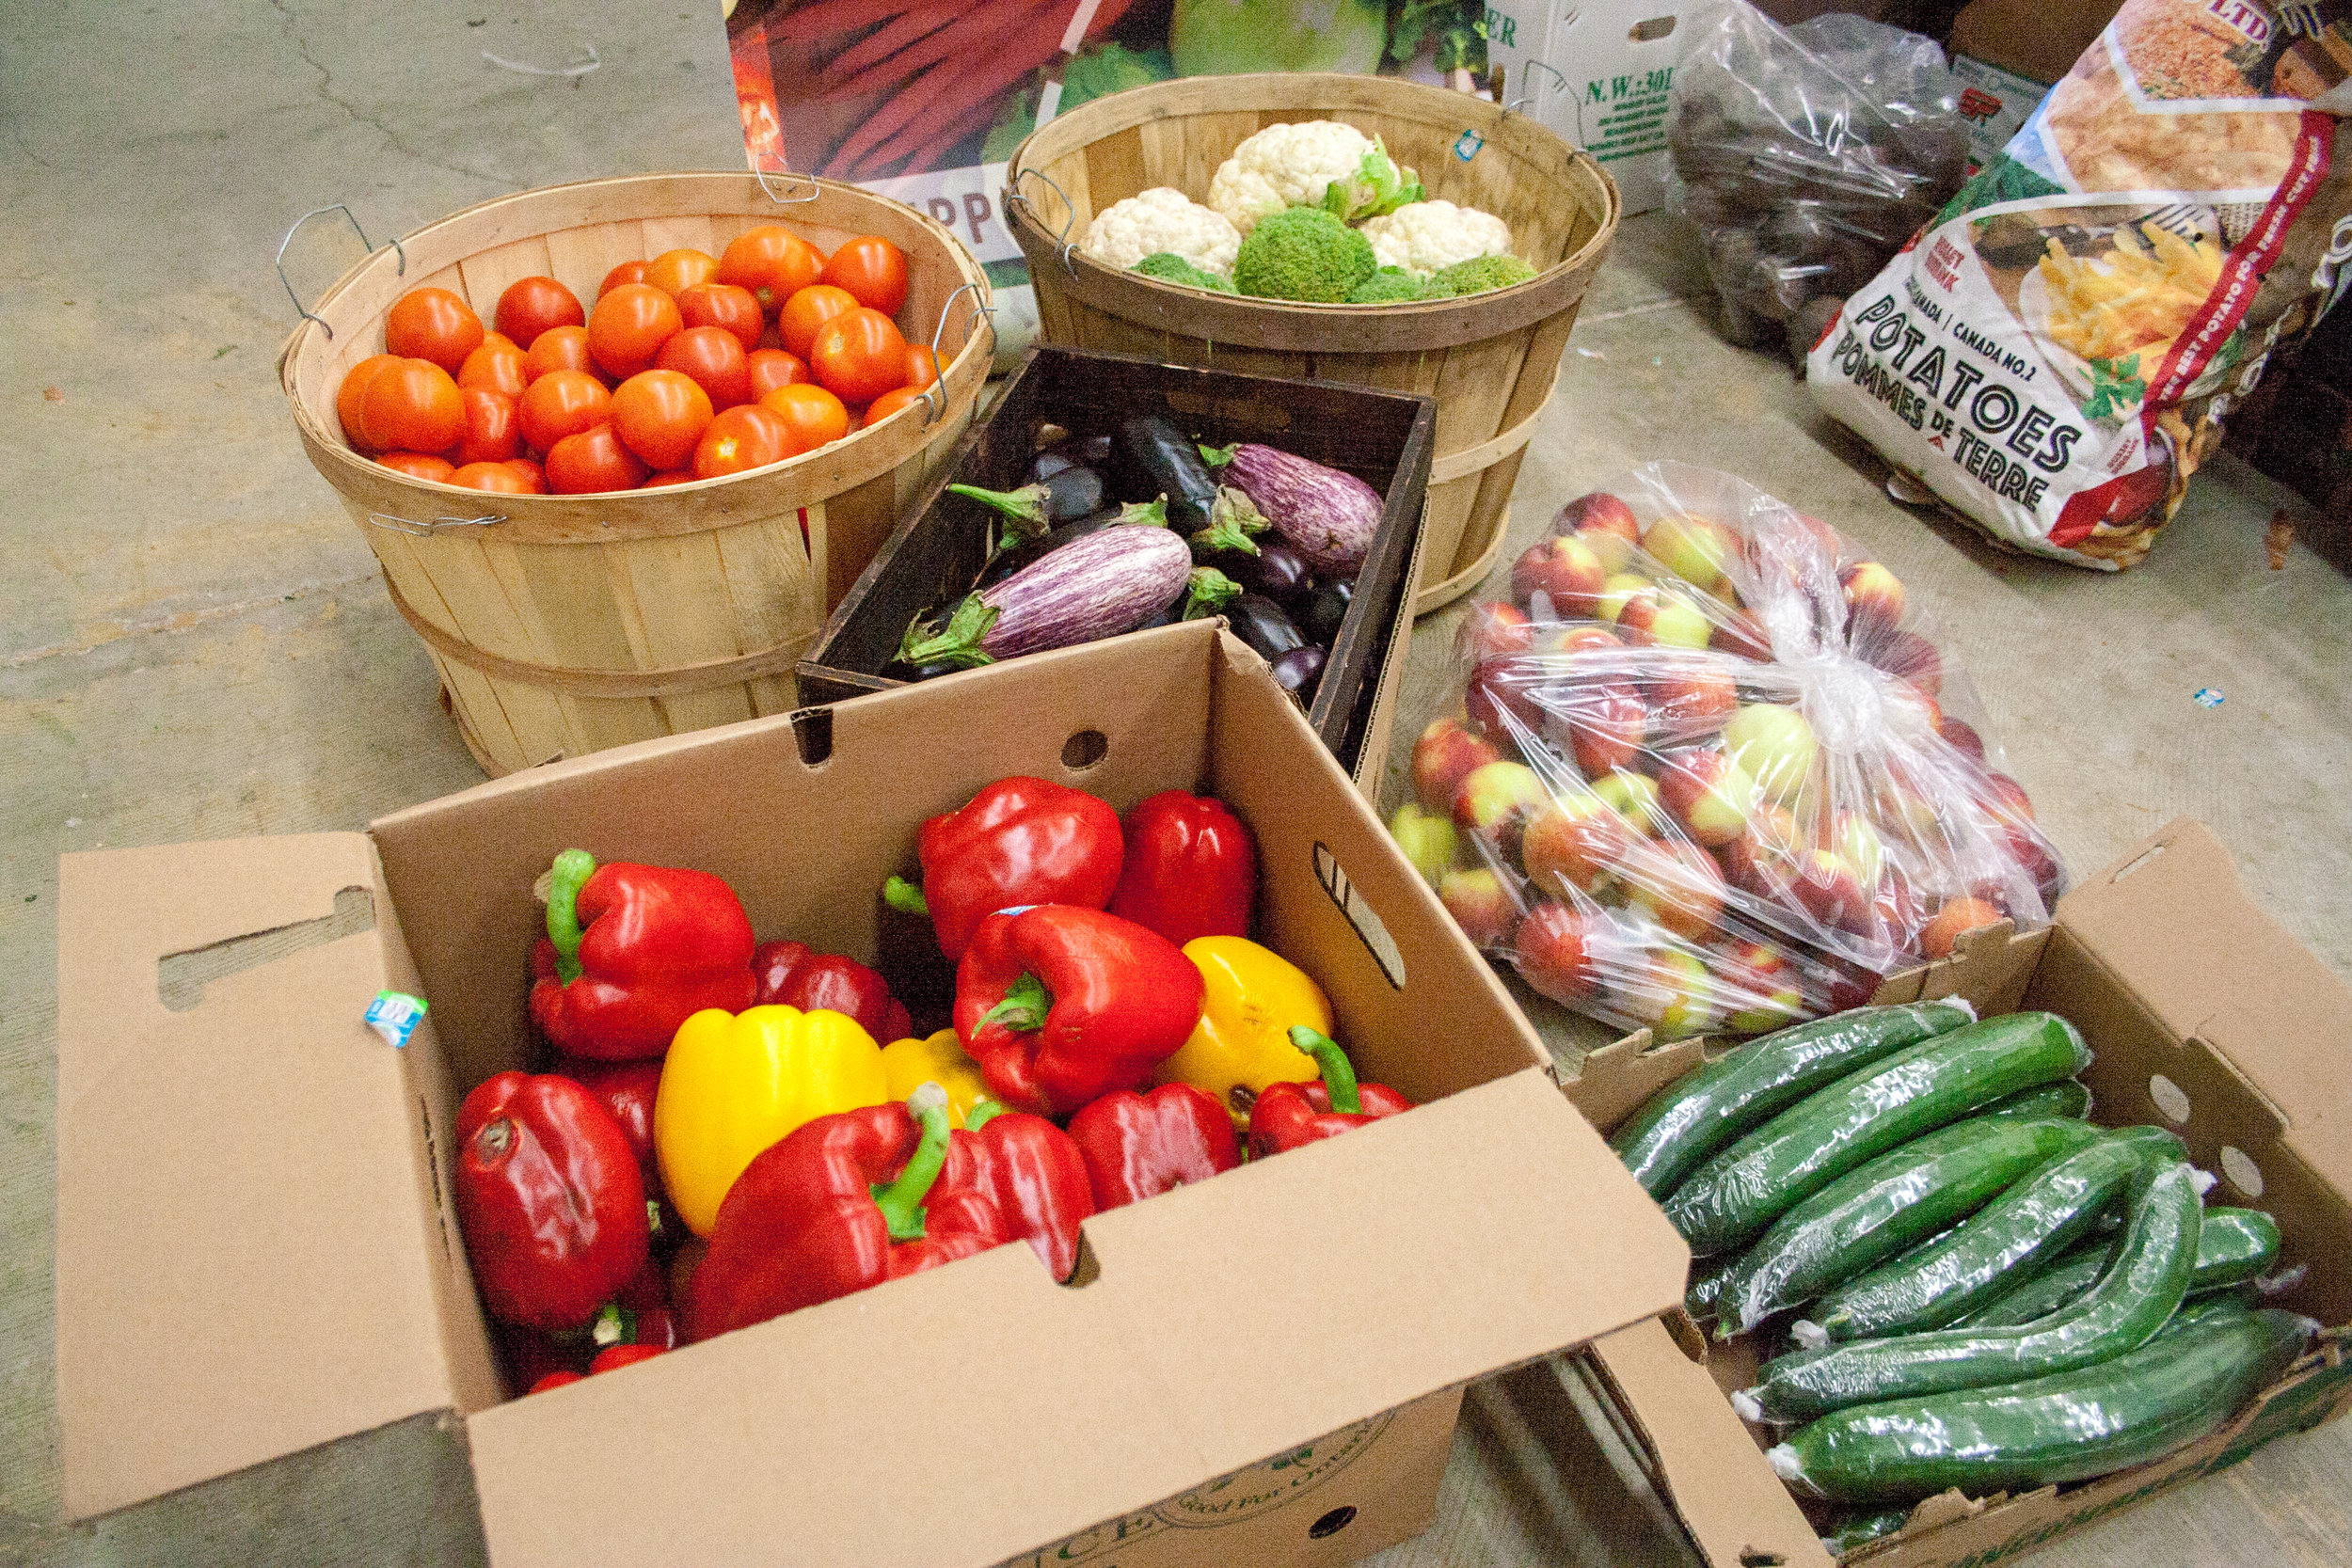 FoodFund veggies and fruits